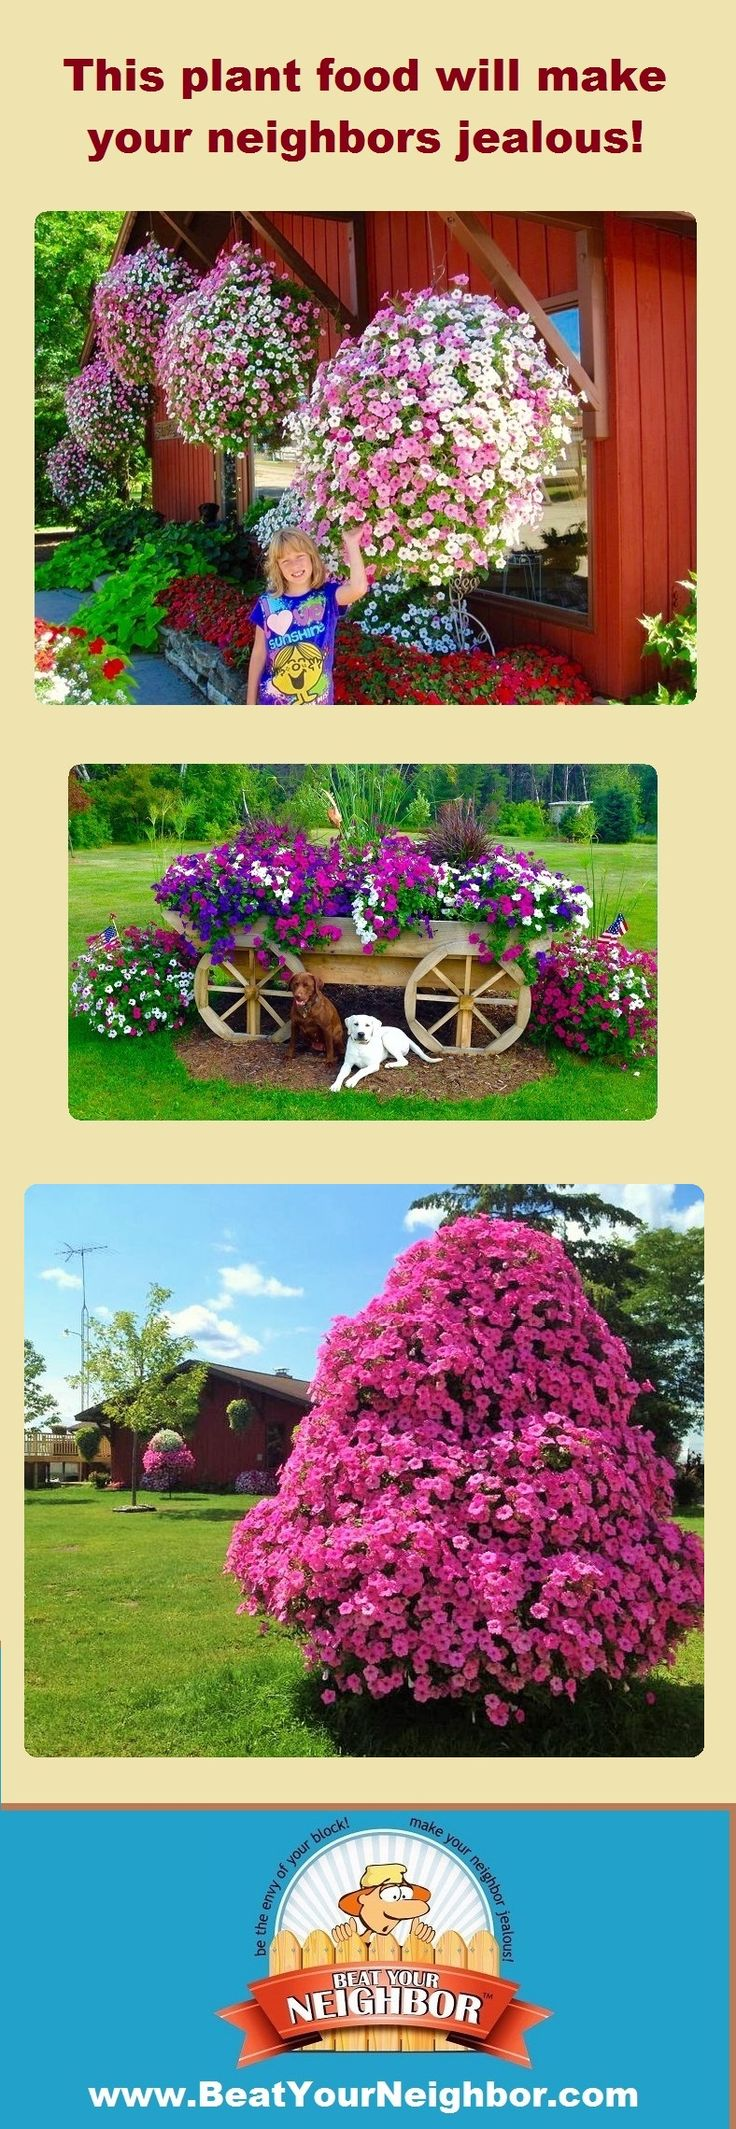 If you want huge flowers this year, you need to check out www.BeatYourNeighbor.com